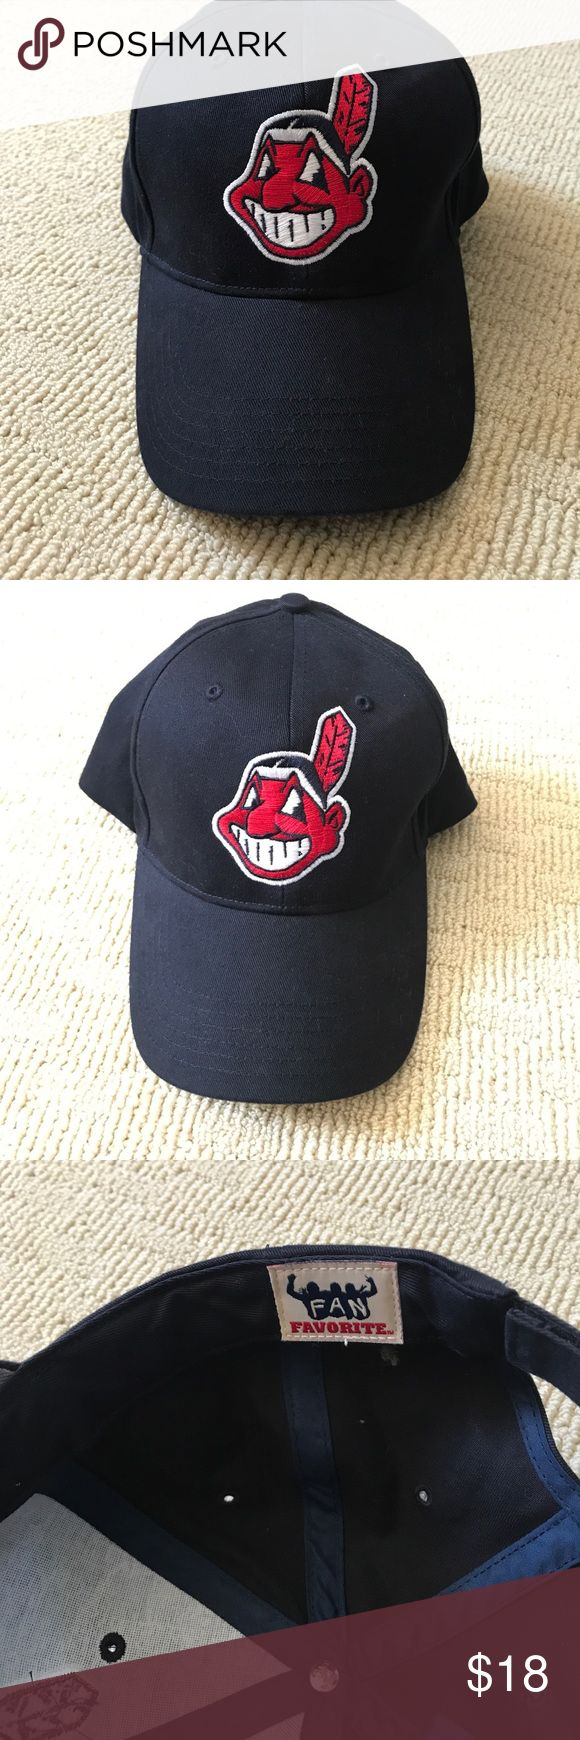 Cleveland Indians Baseball Hat (never worn) Perfect condition, never worn! Baseball Accessories Hats